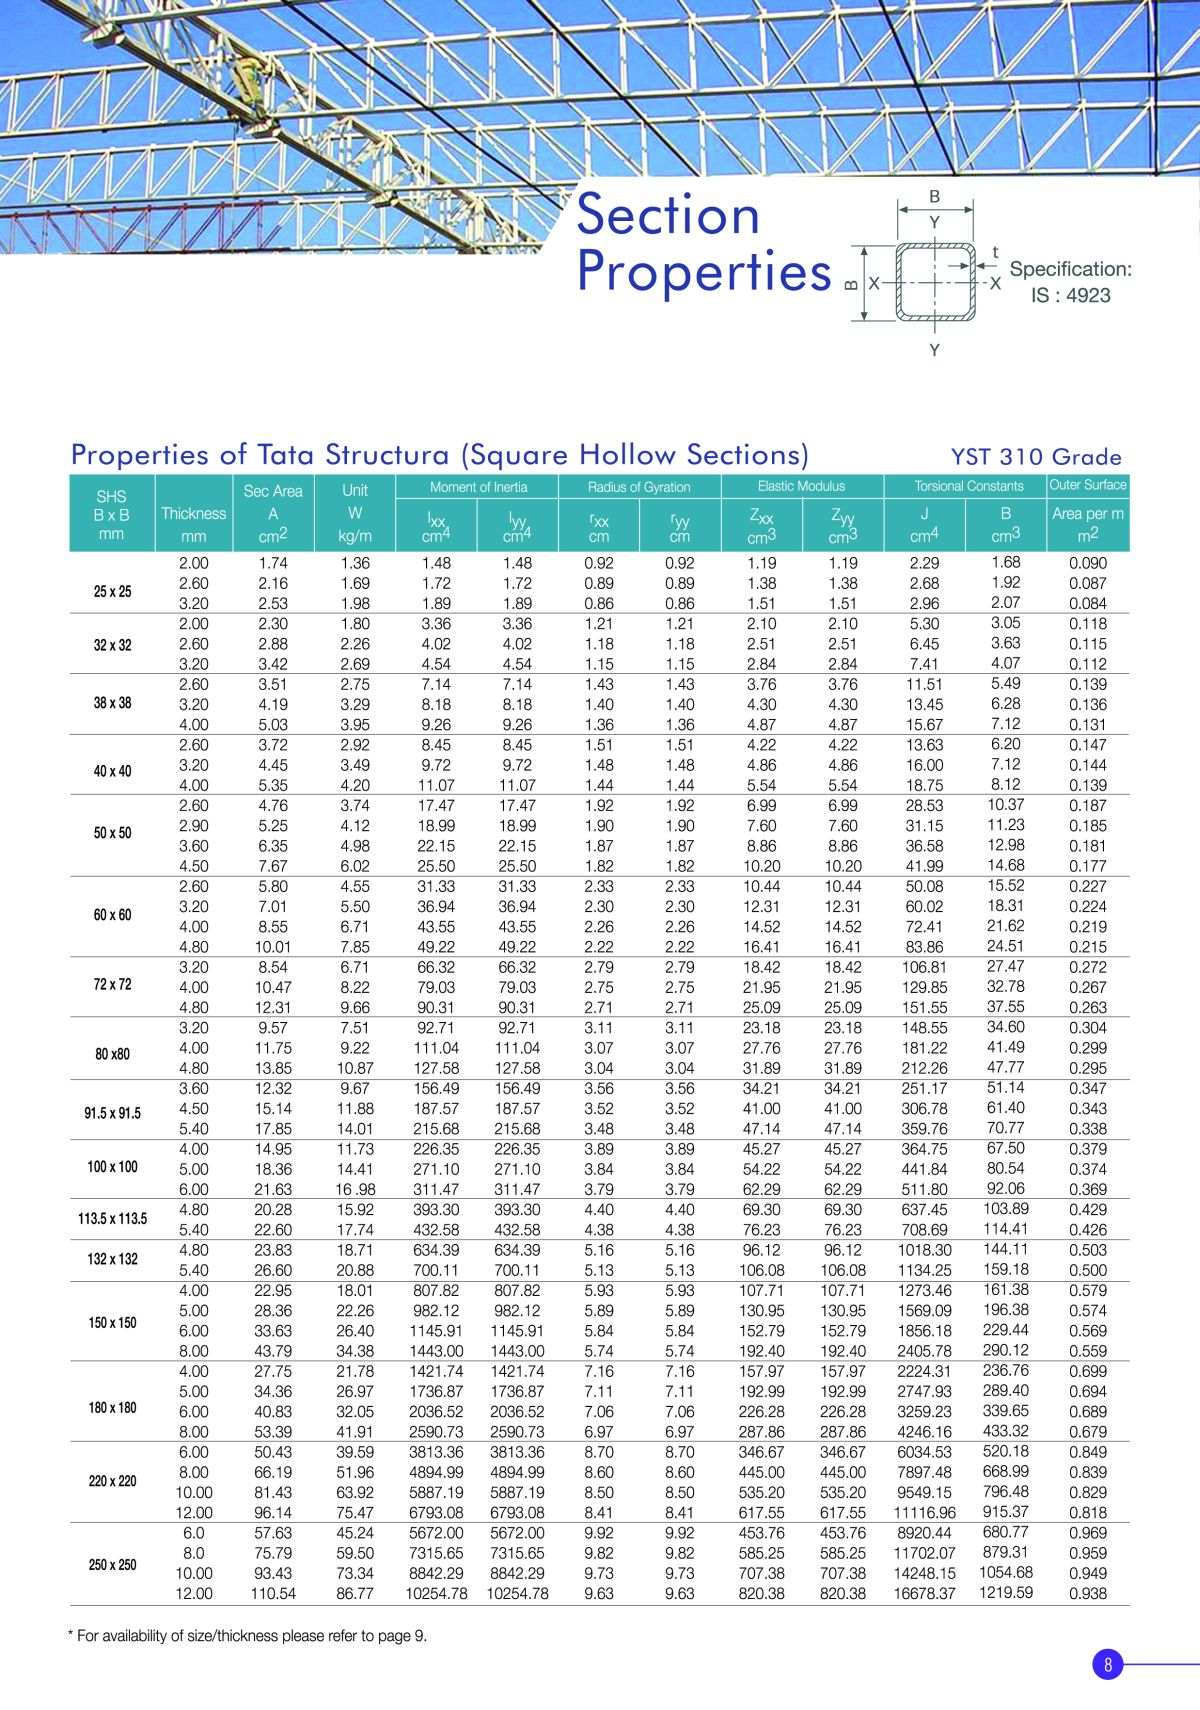 Round steel pipe weight chart high quality metric tubing from brand tata hollow section pipe supply a wide variety of nvjuhfo Gallery